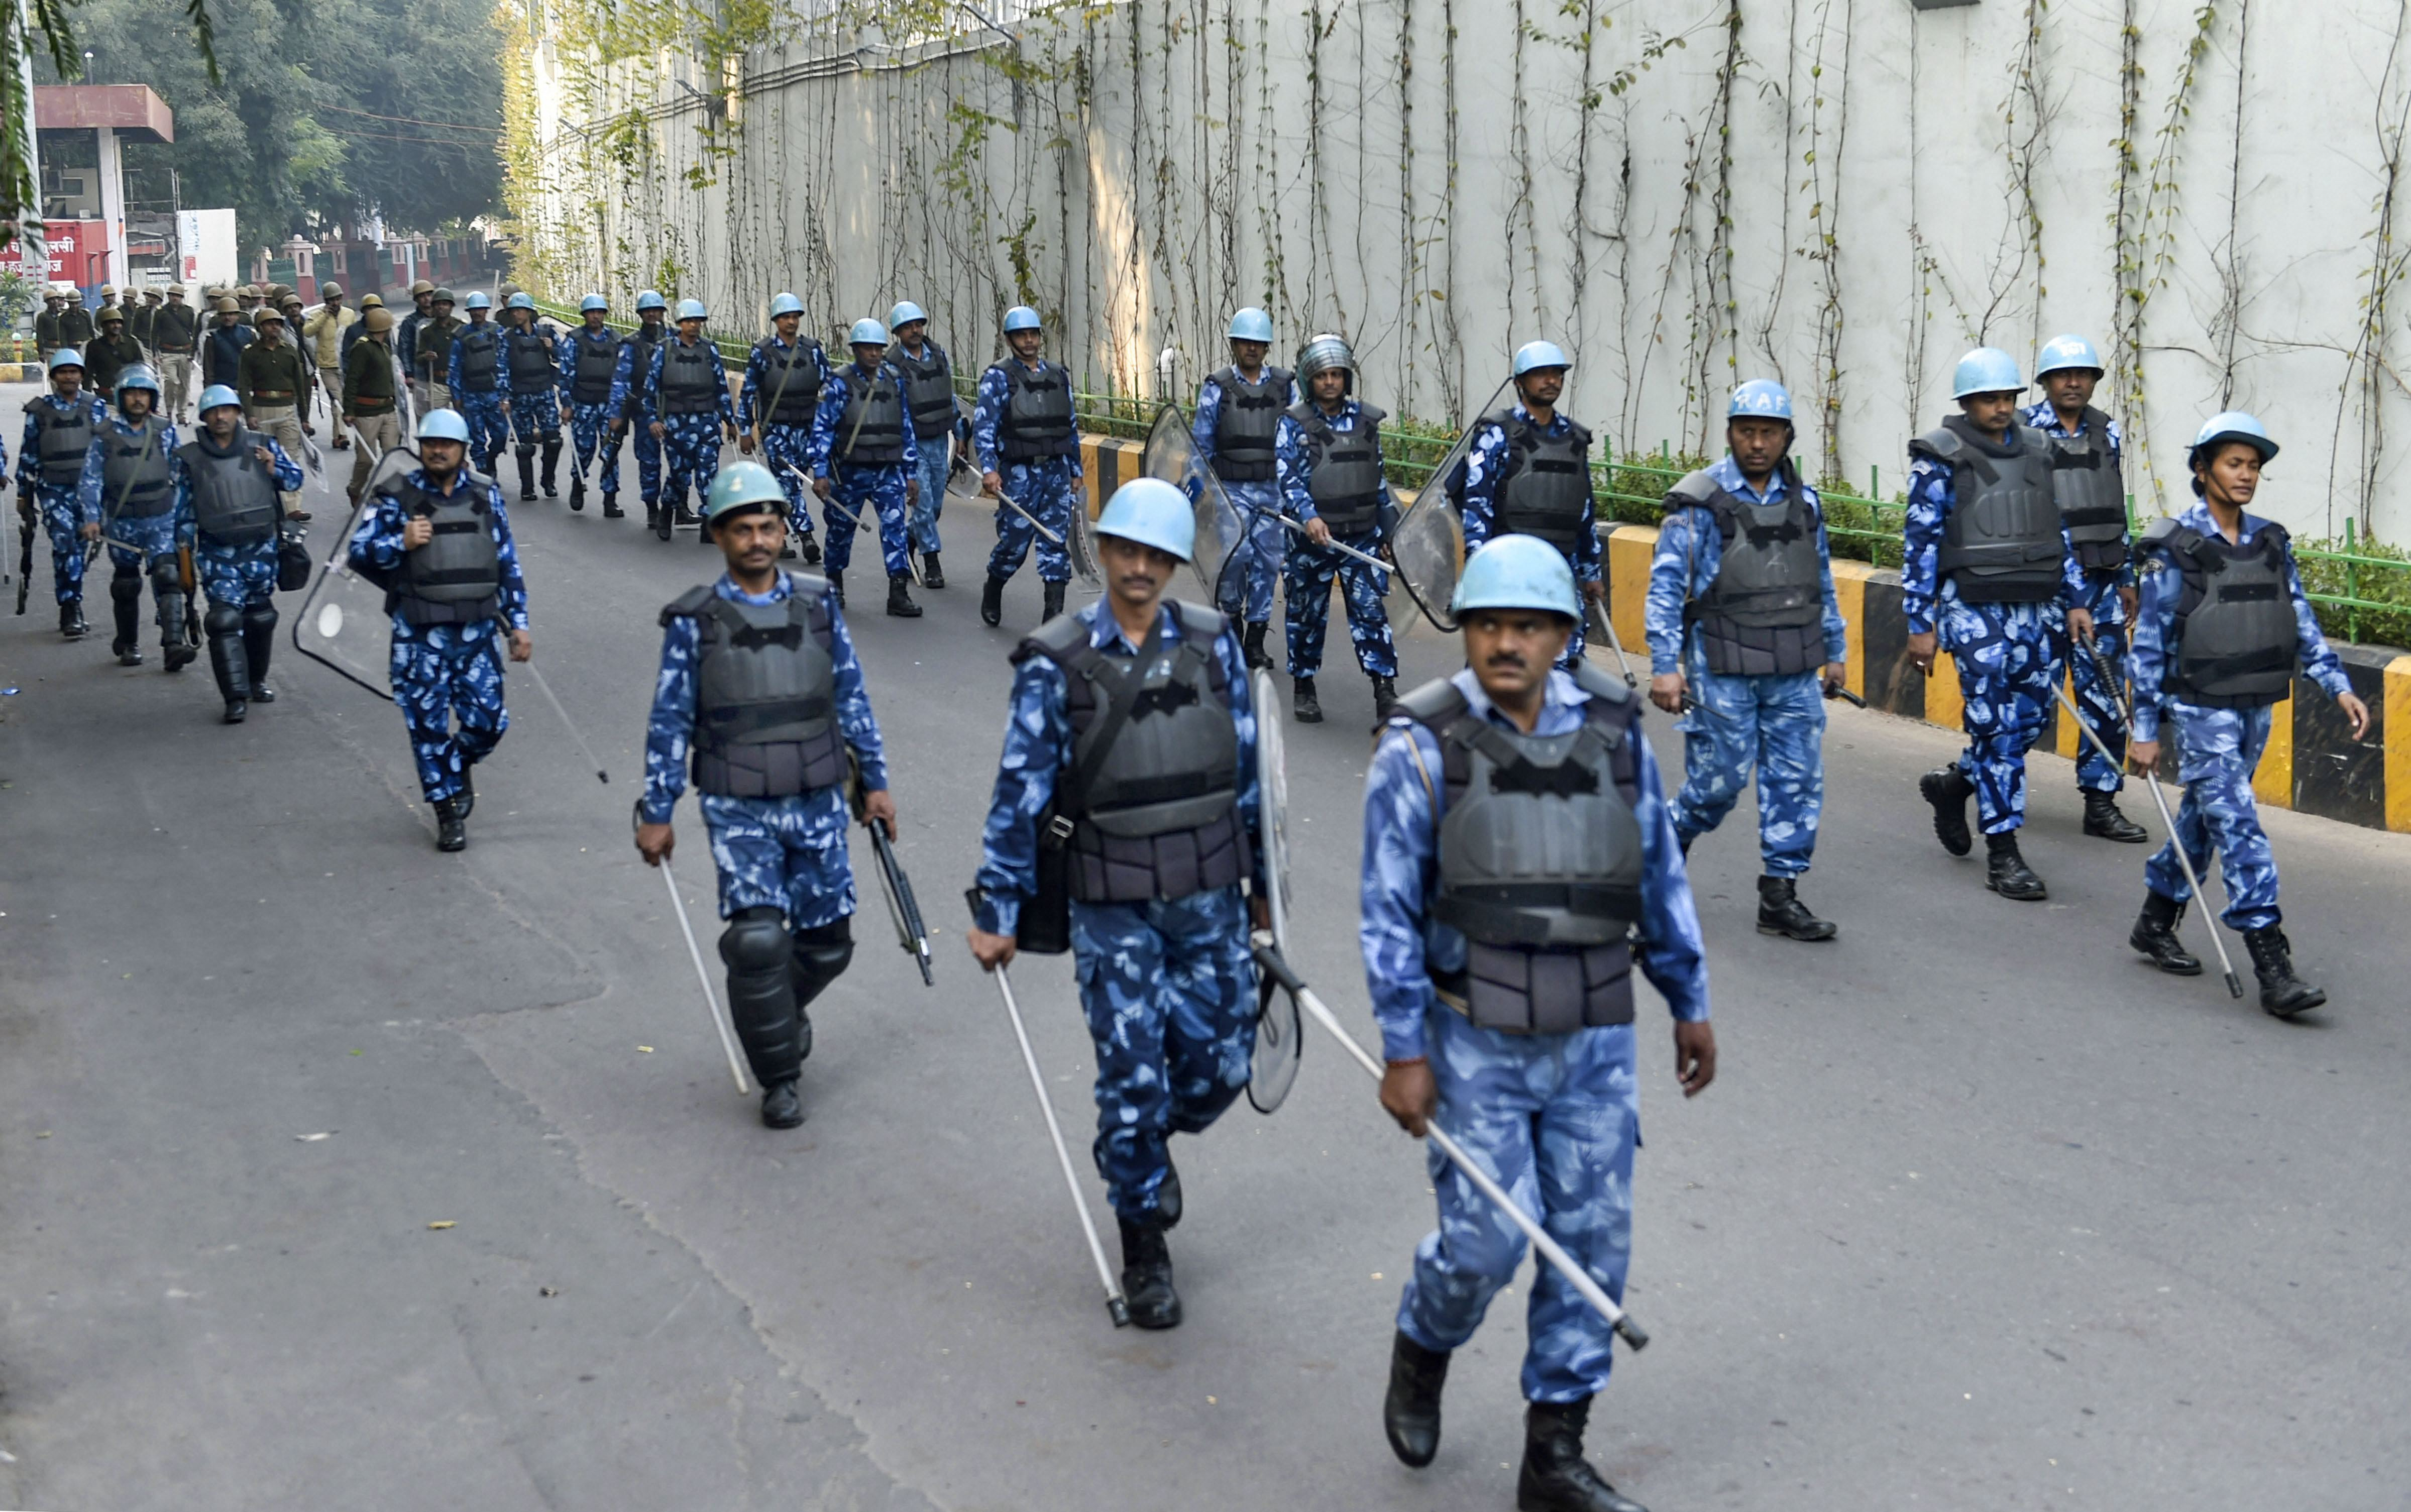 RAF personnel patrol a street, days after protestors resorted to stone-pelting and clashes during agitation against the Citizenship Amendment Act, in Lucknow, Dec. 22, 2019.